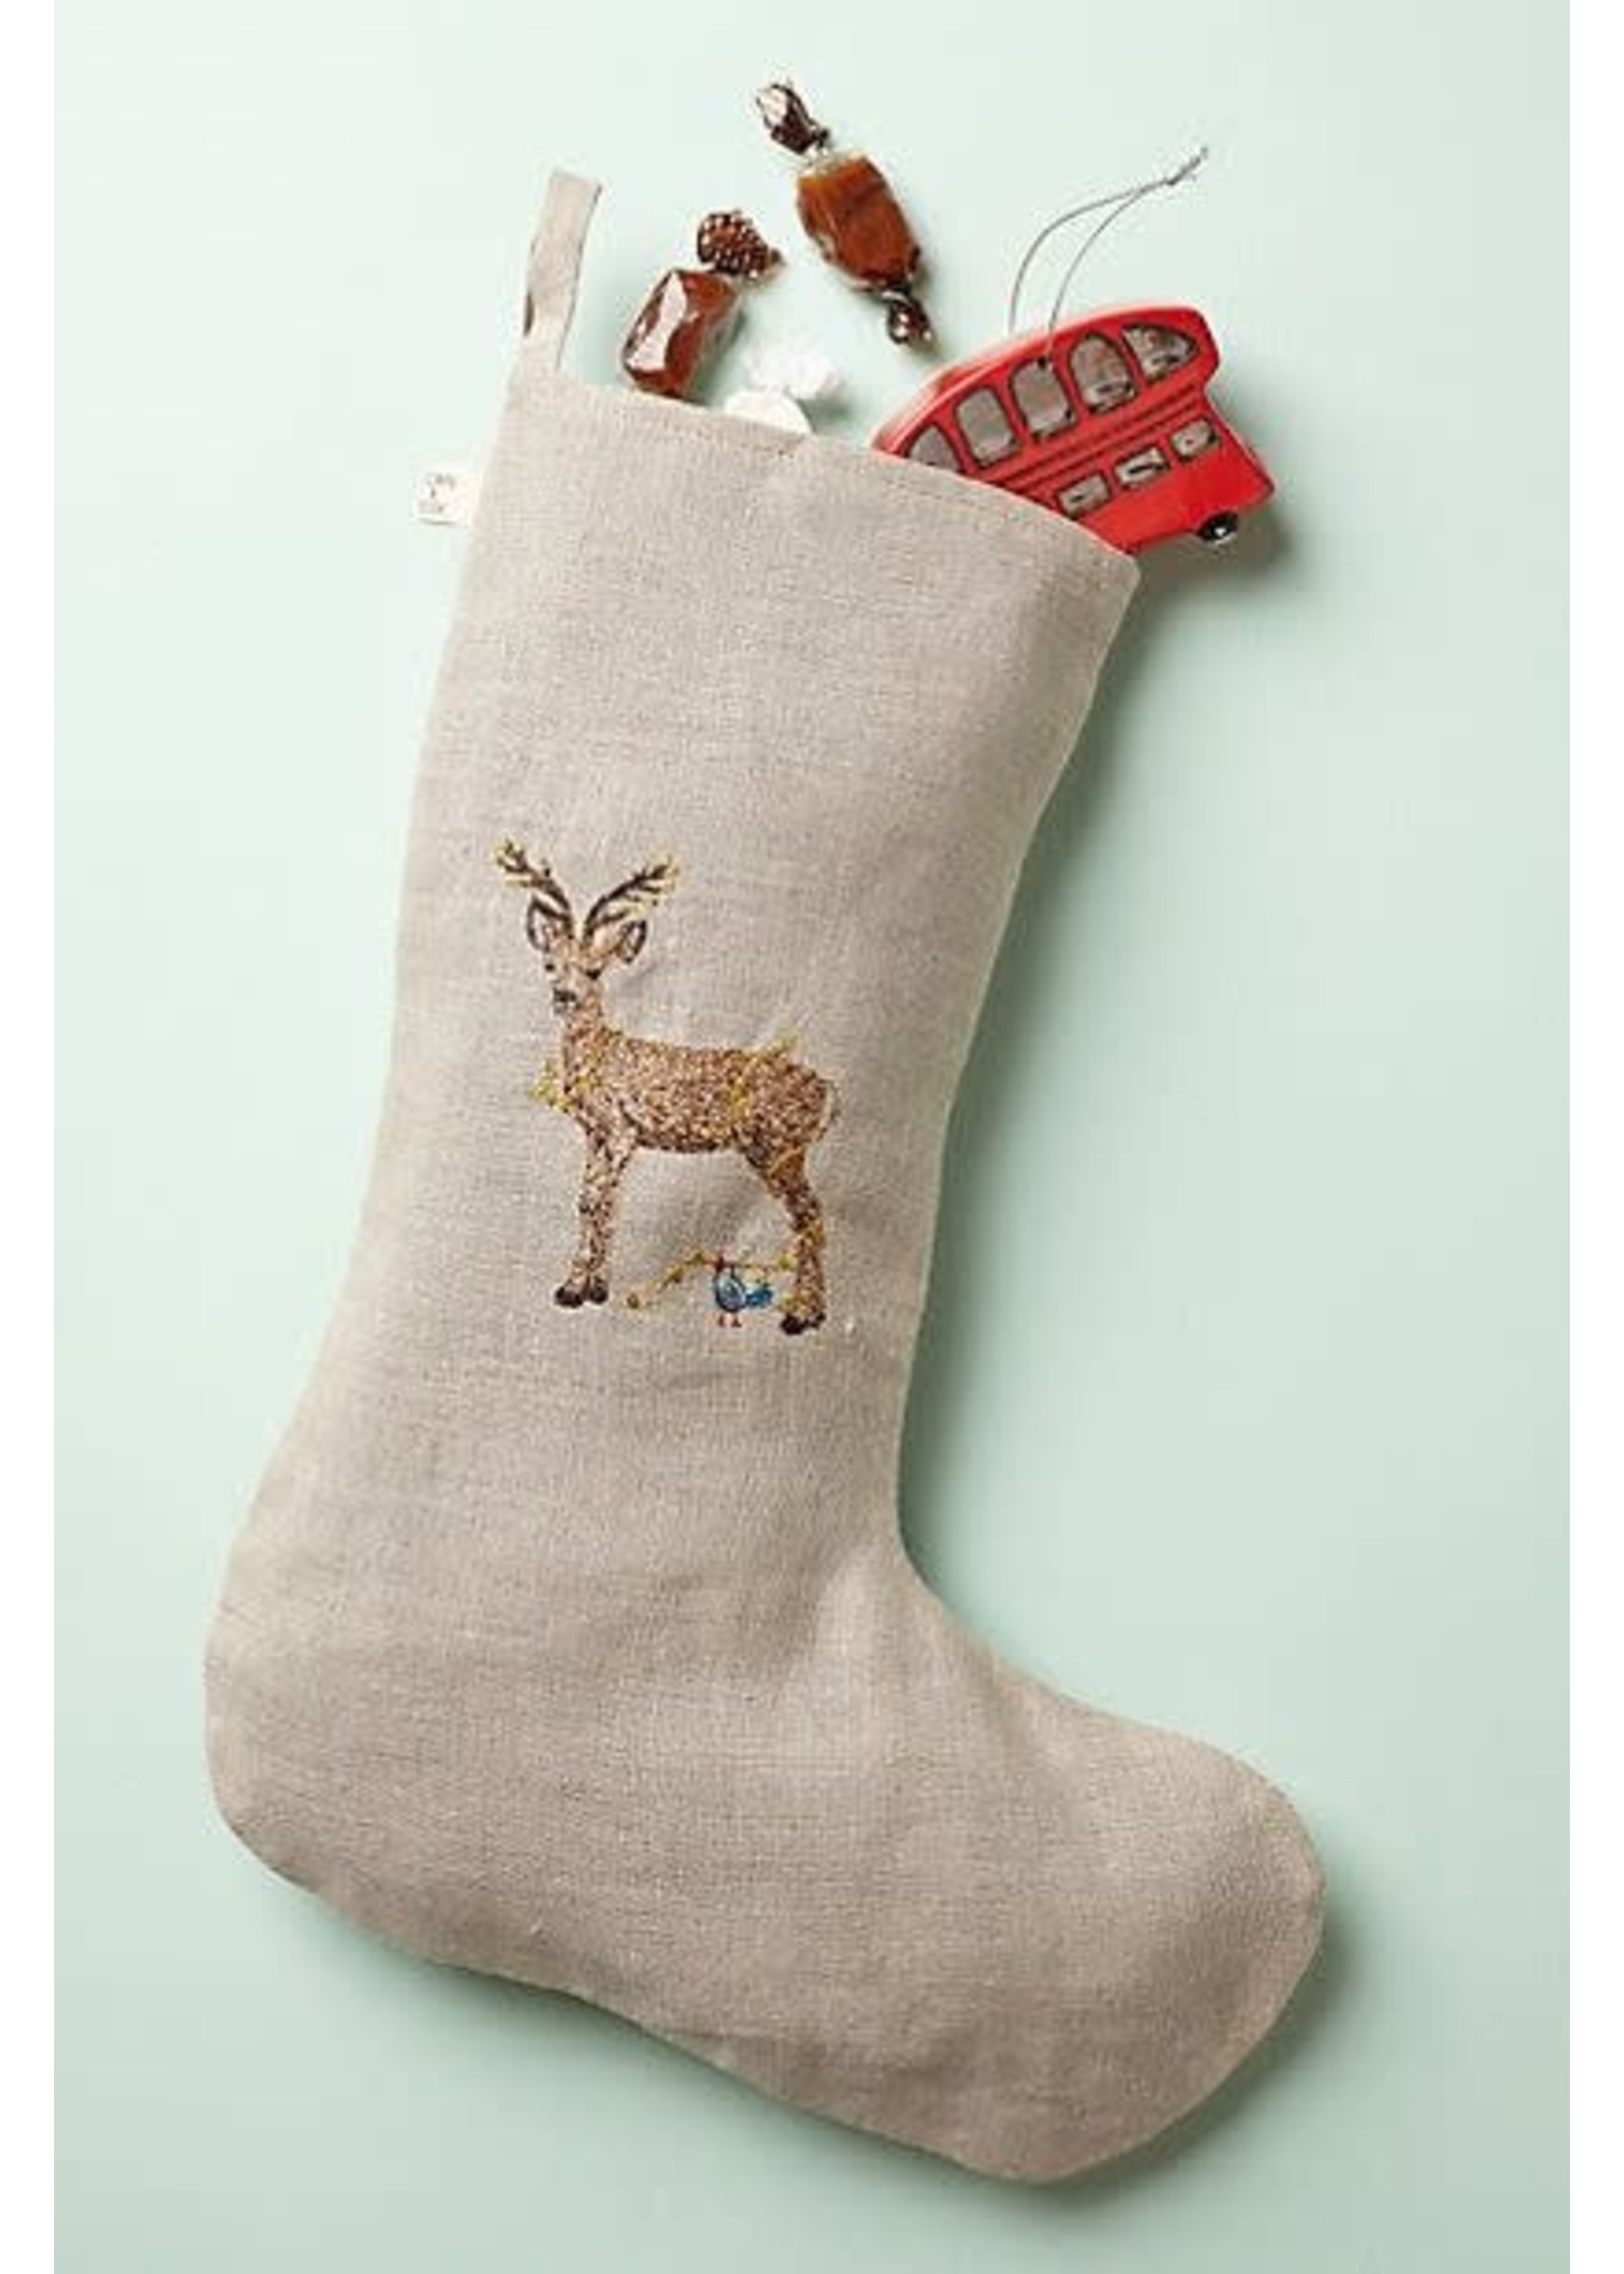 Coral and Tusk Stocking - Deer with Lights - Small